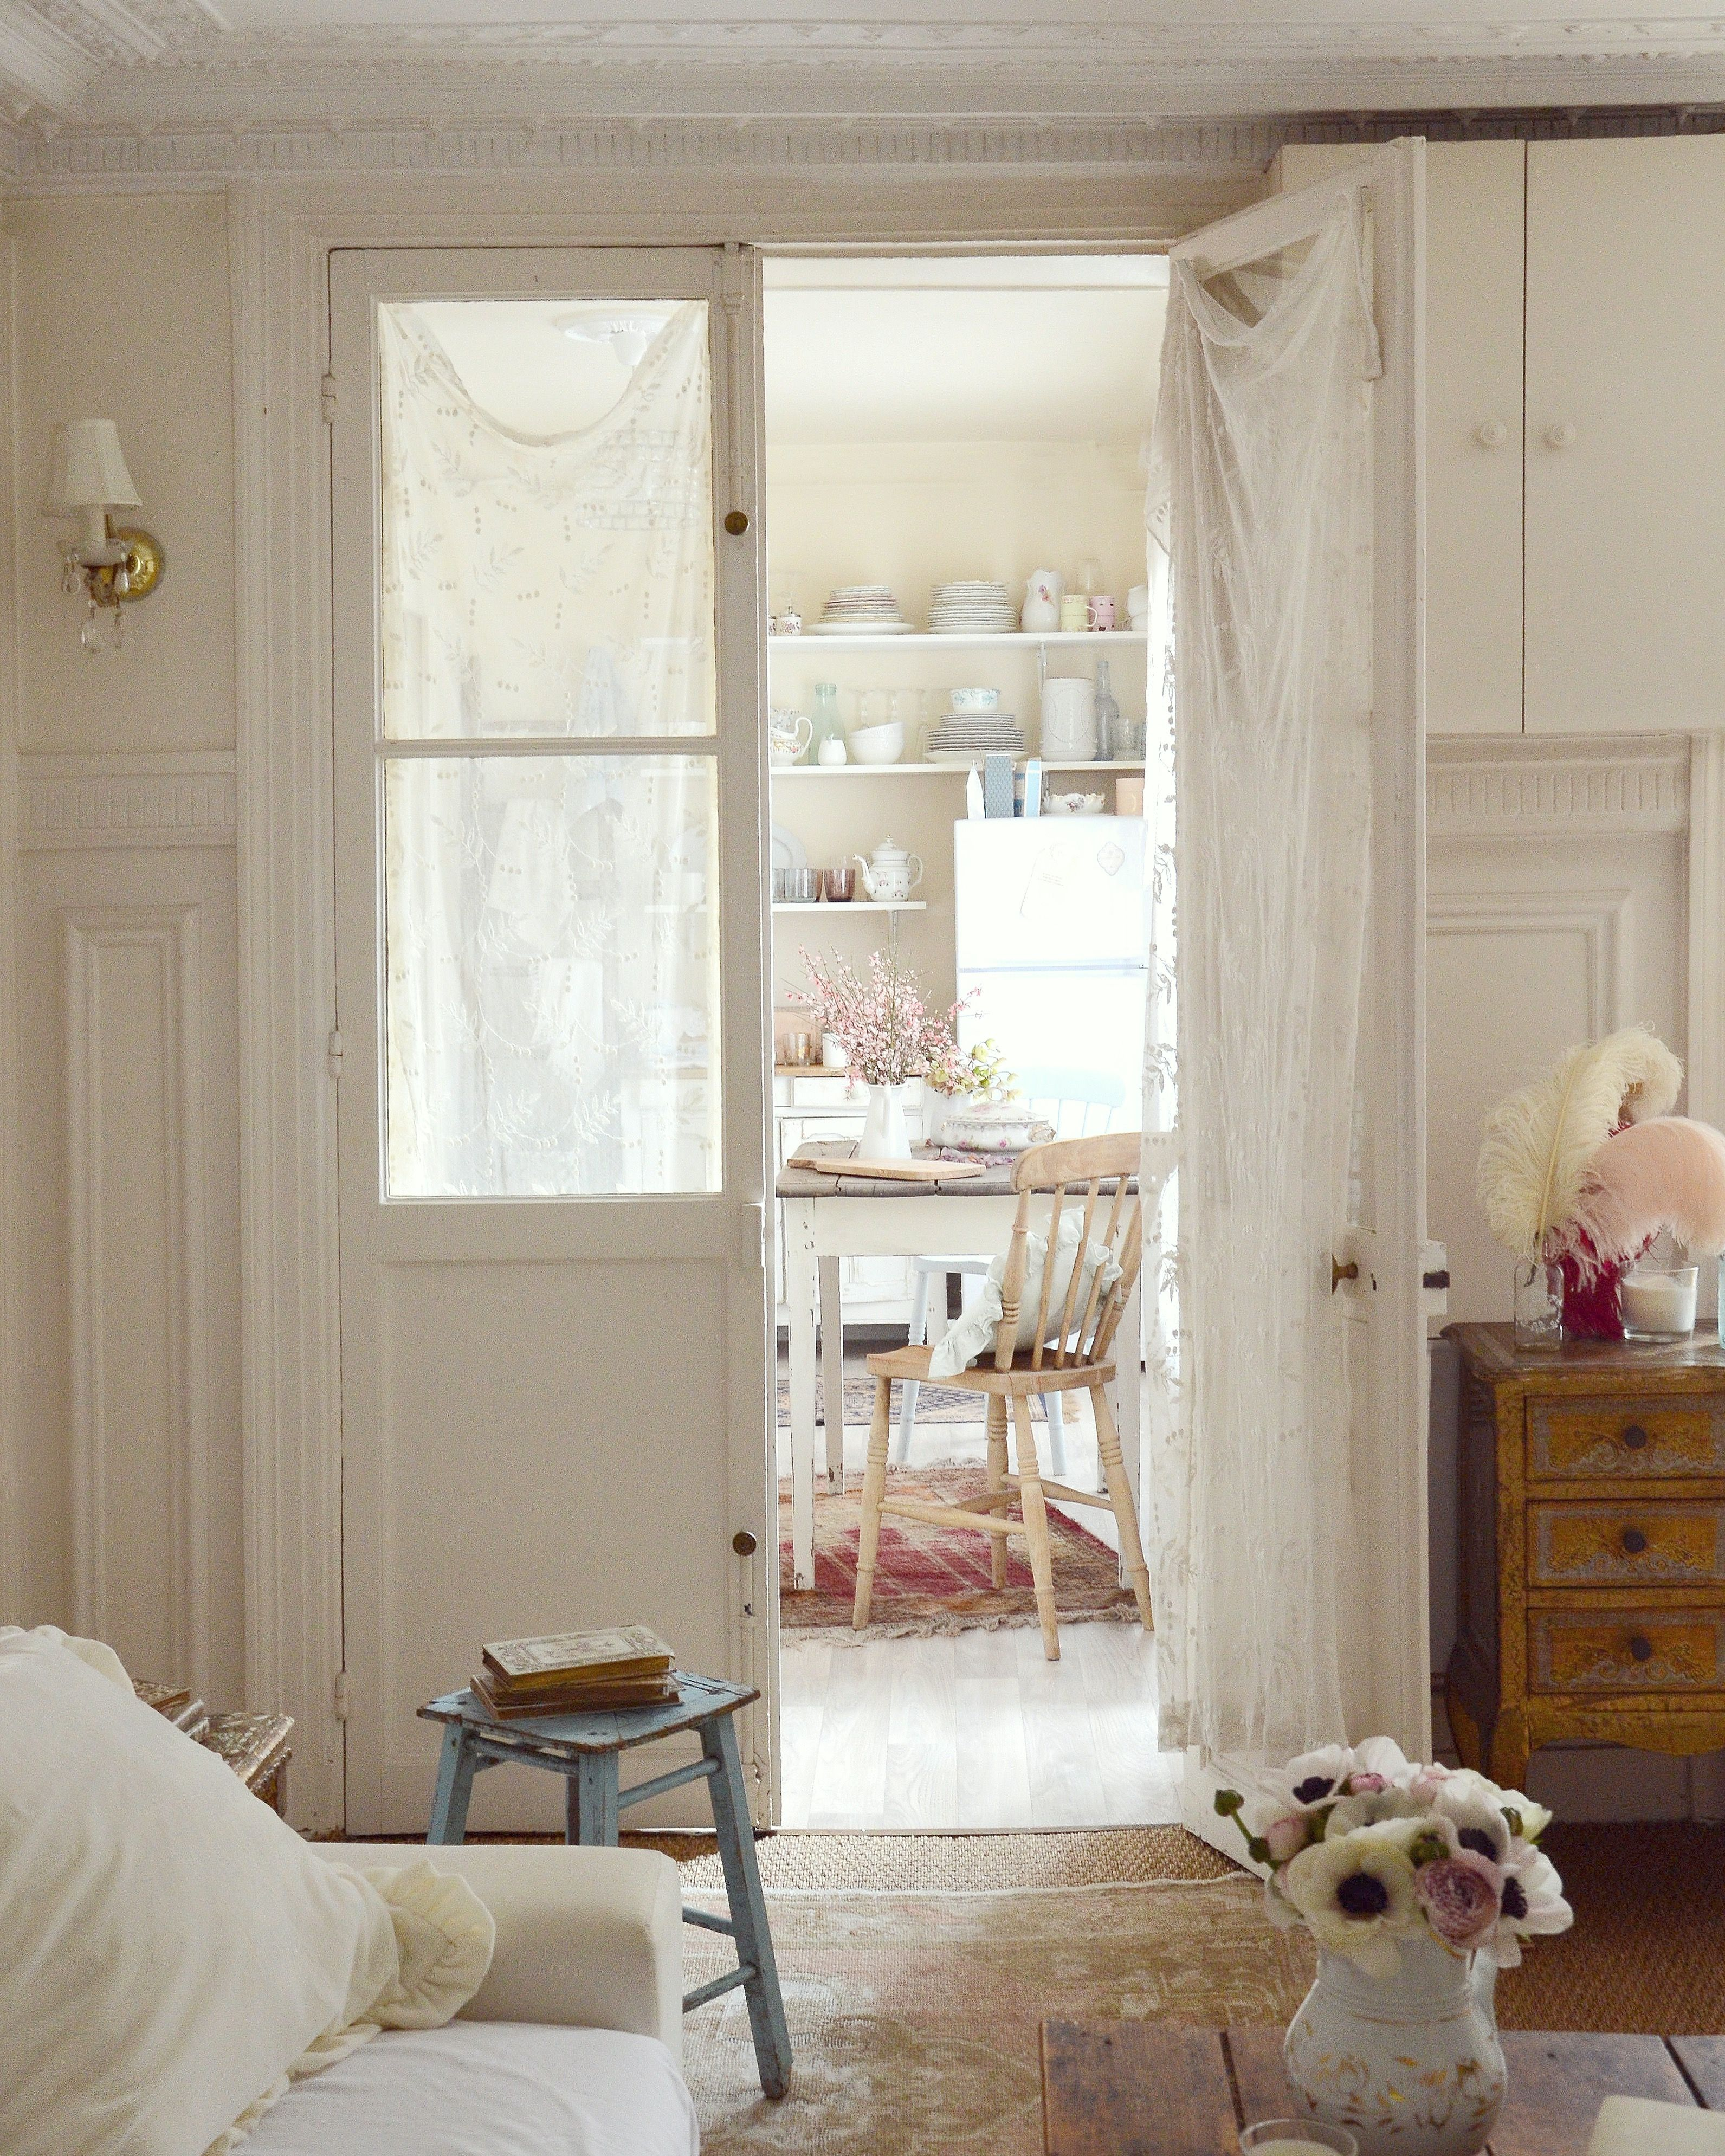 Spring time in my Paris home!